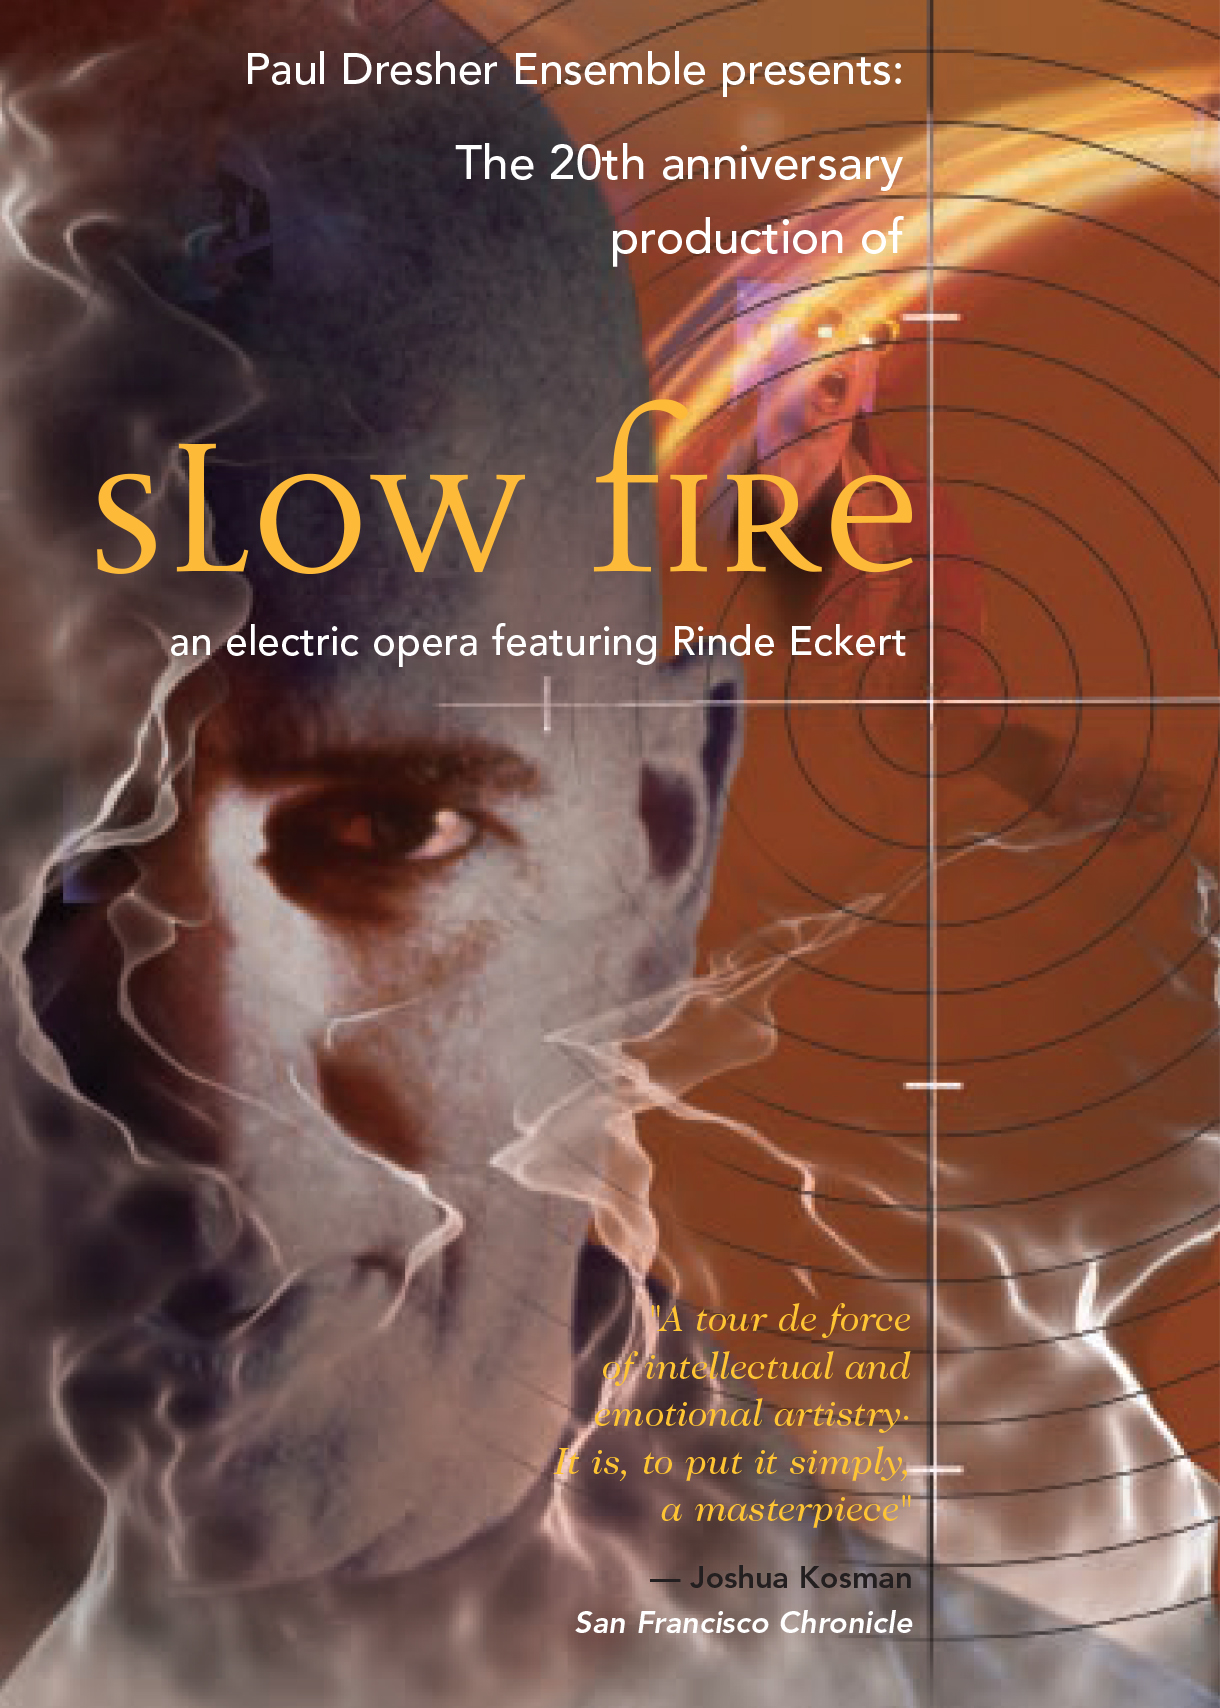 slow fire Dresher Ensemble